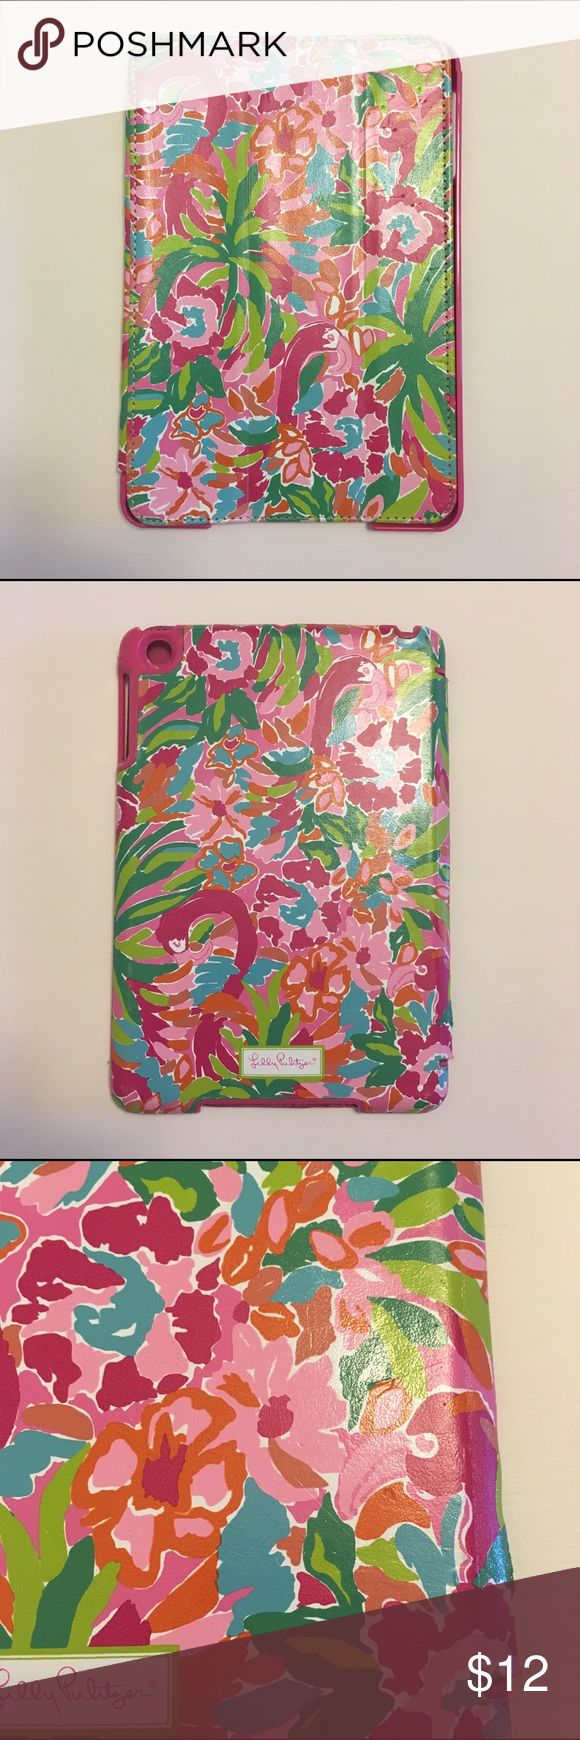 "Lilly Pulitzer iPad mini 1st generation case Pre-owned Lilly Pulitzer iPad case in ""Lulu"" print with pink microfiber lining. Fits 1st generation iPad mini. Magnetic cover triggers iPad's sleep/wake function upon opening. Has normal wear/scratches on outside covers (see pictures). Lilly Pulitzer Accessories Tablet Cases"